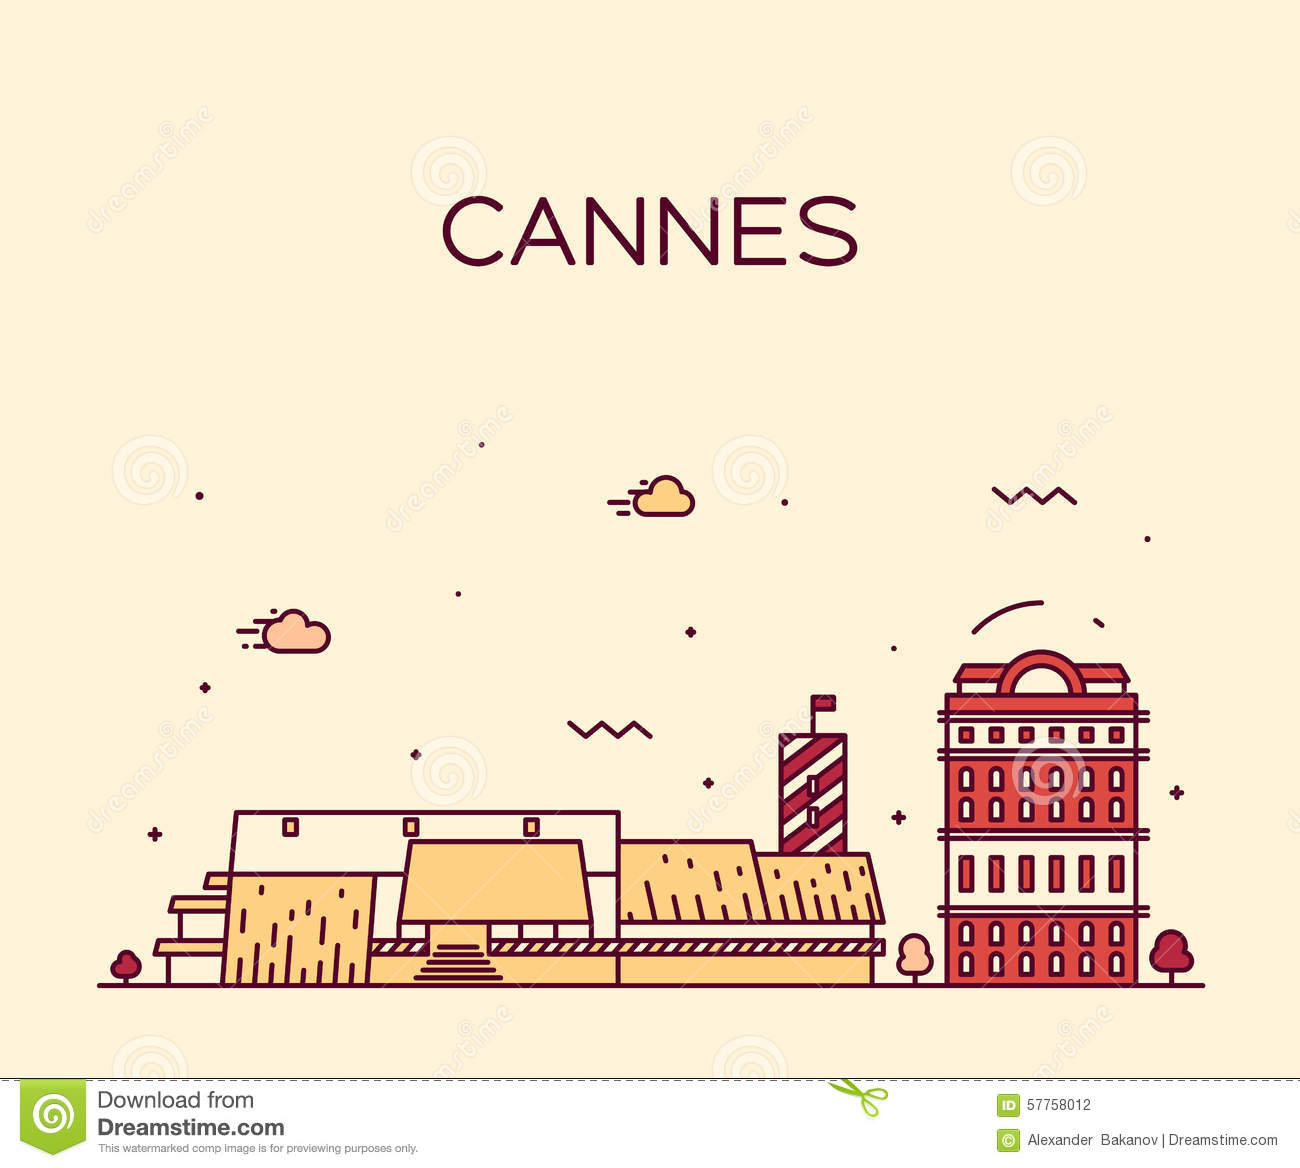 Cannes Stock Illustrations.